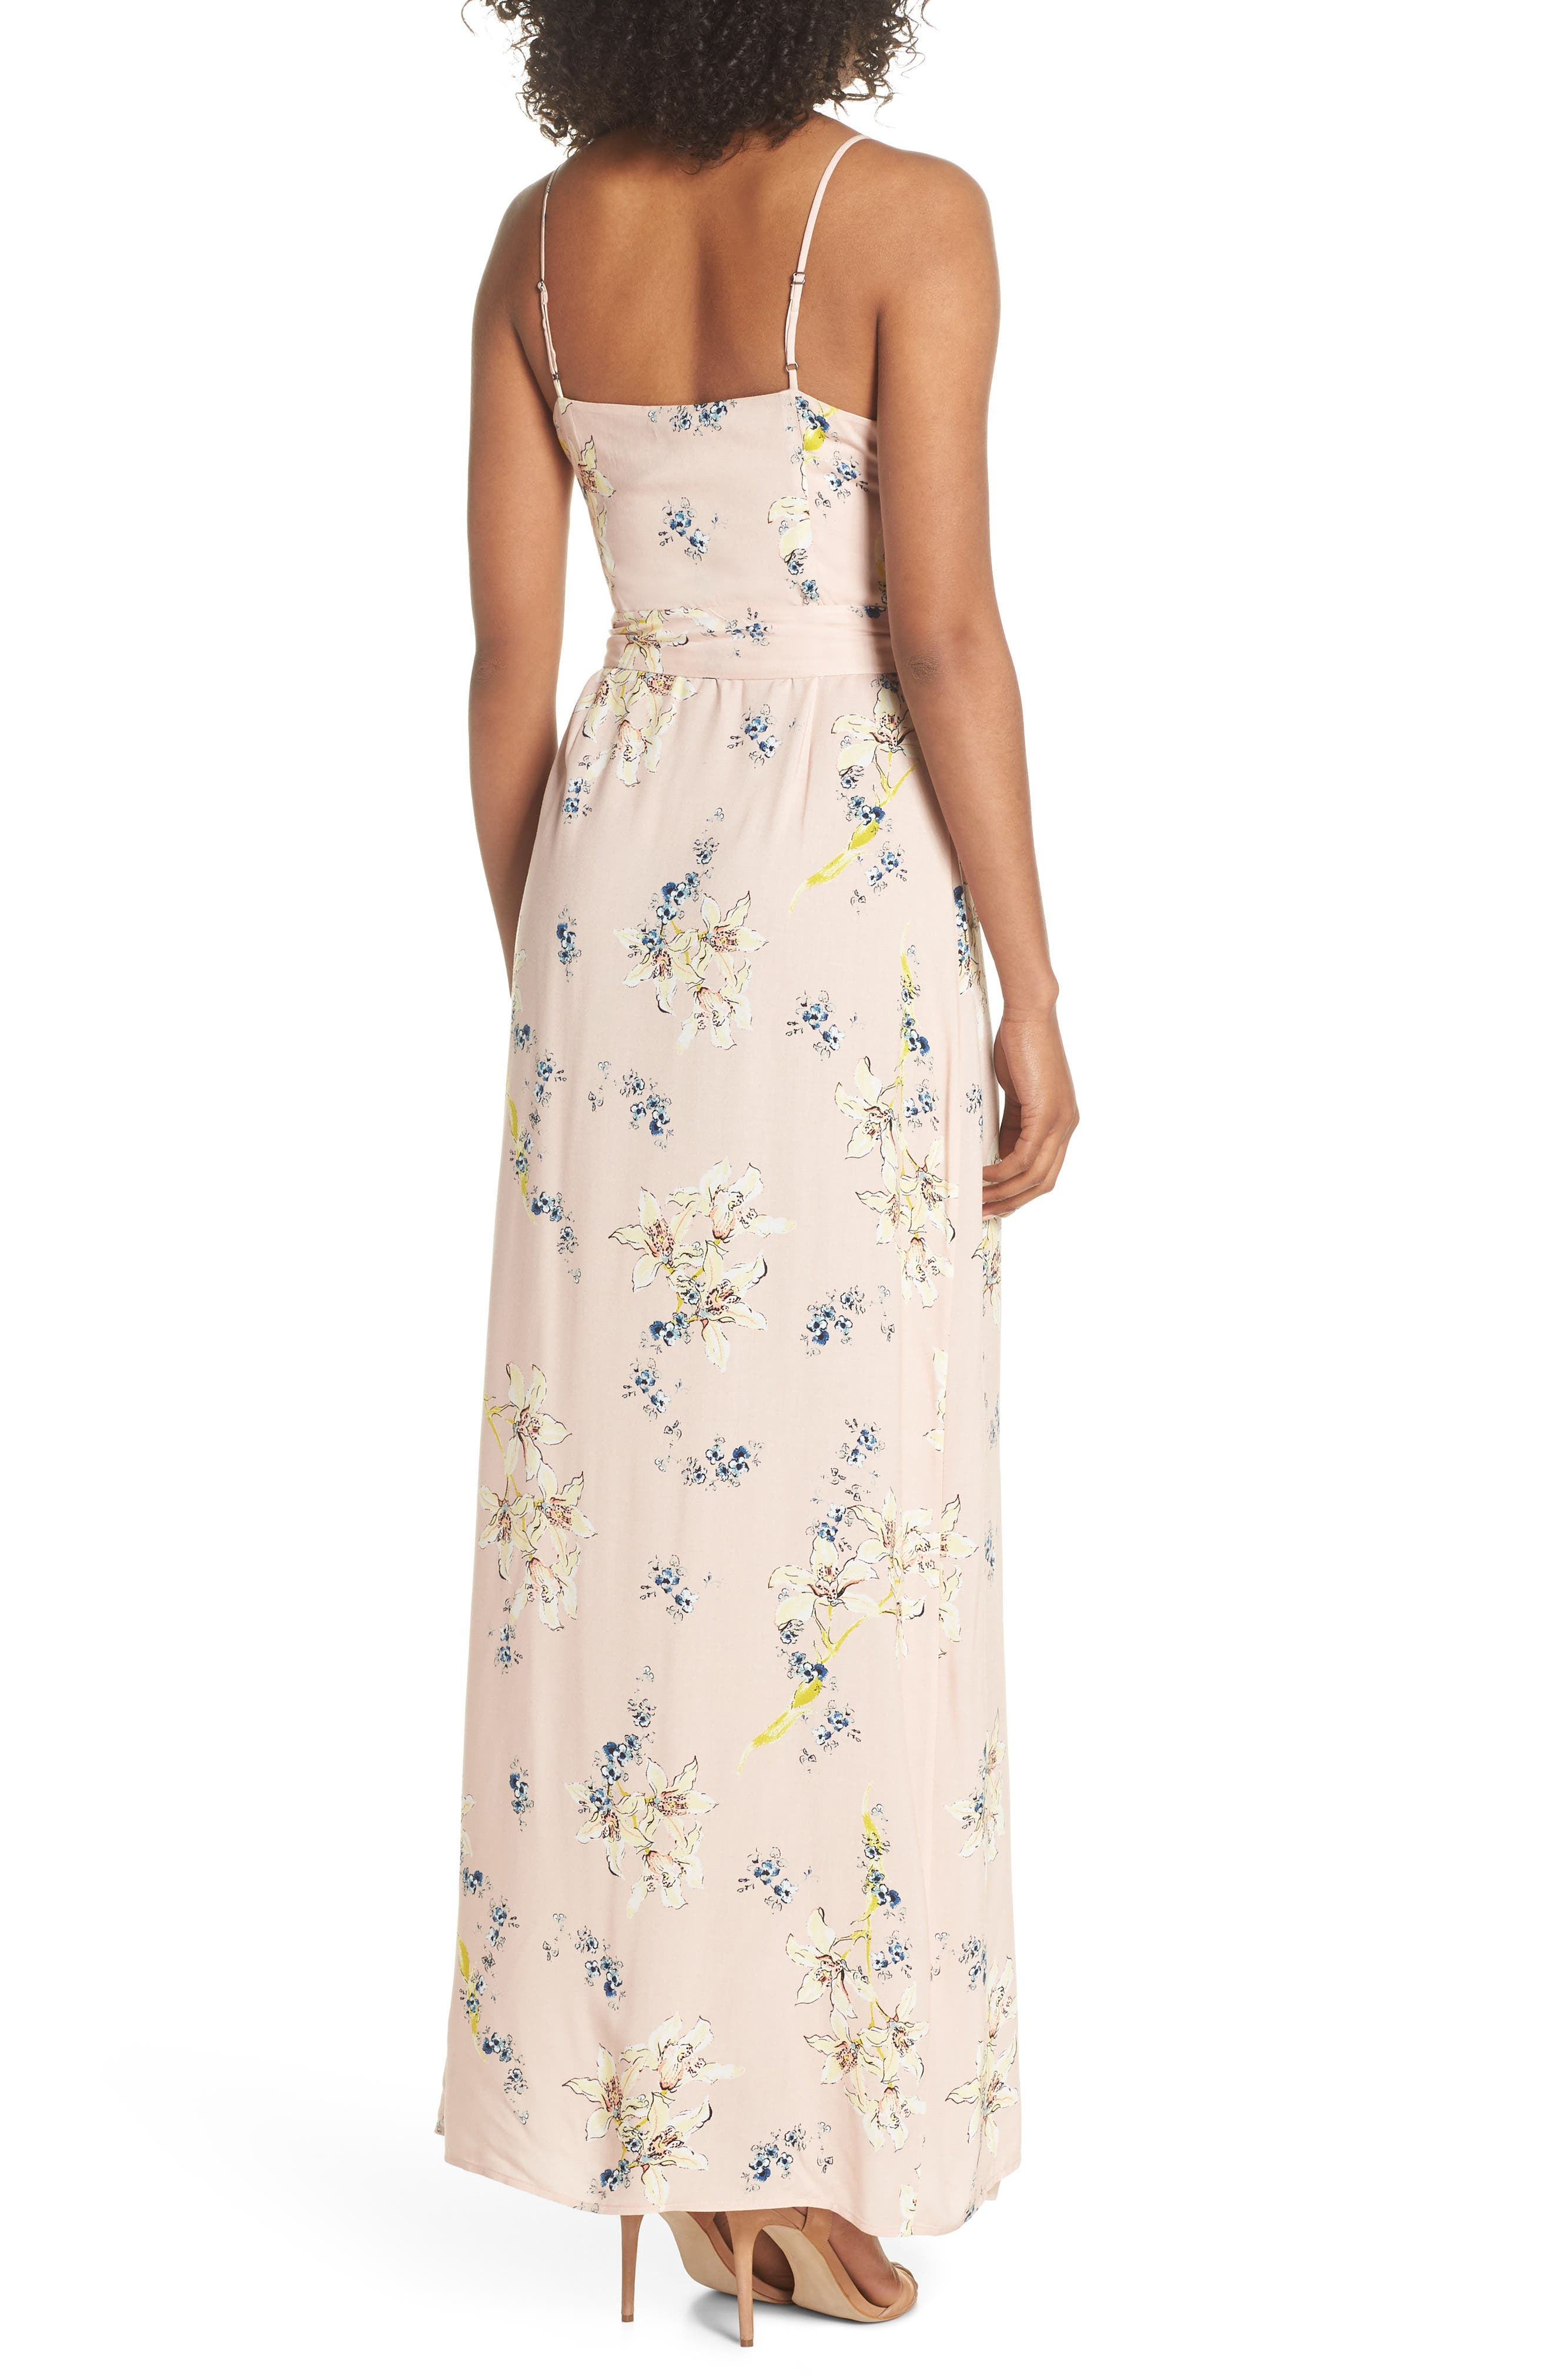 Regina Floral Print Maxi Dress,                             Alternate thumbnail 2, color,                             700